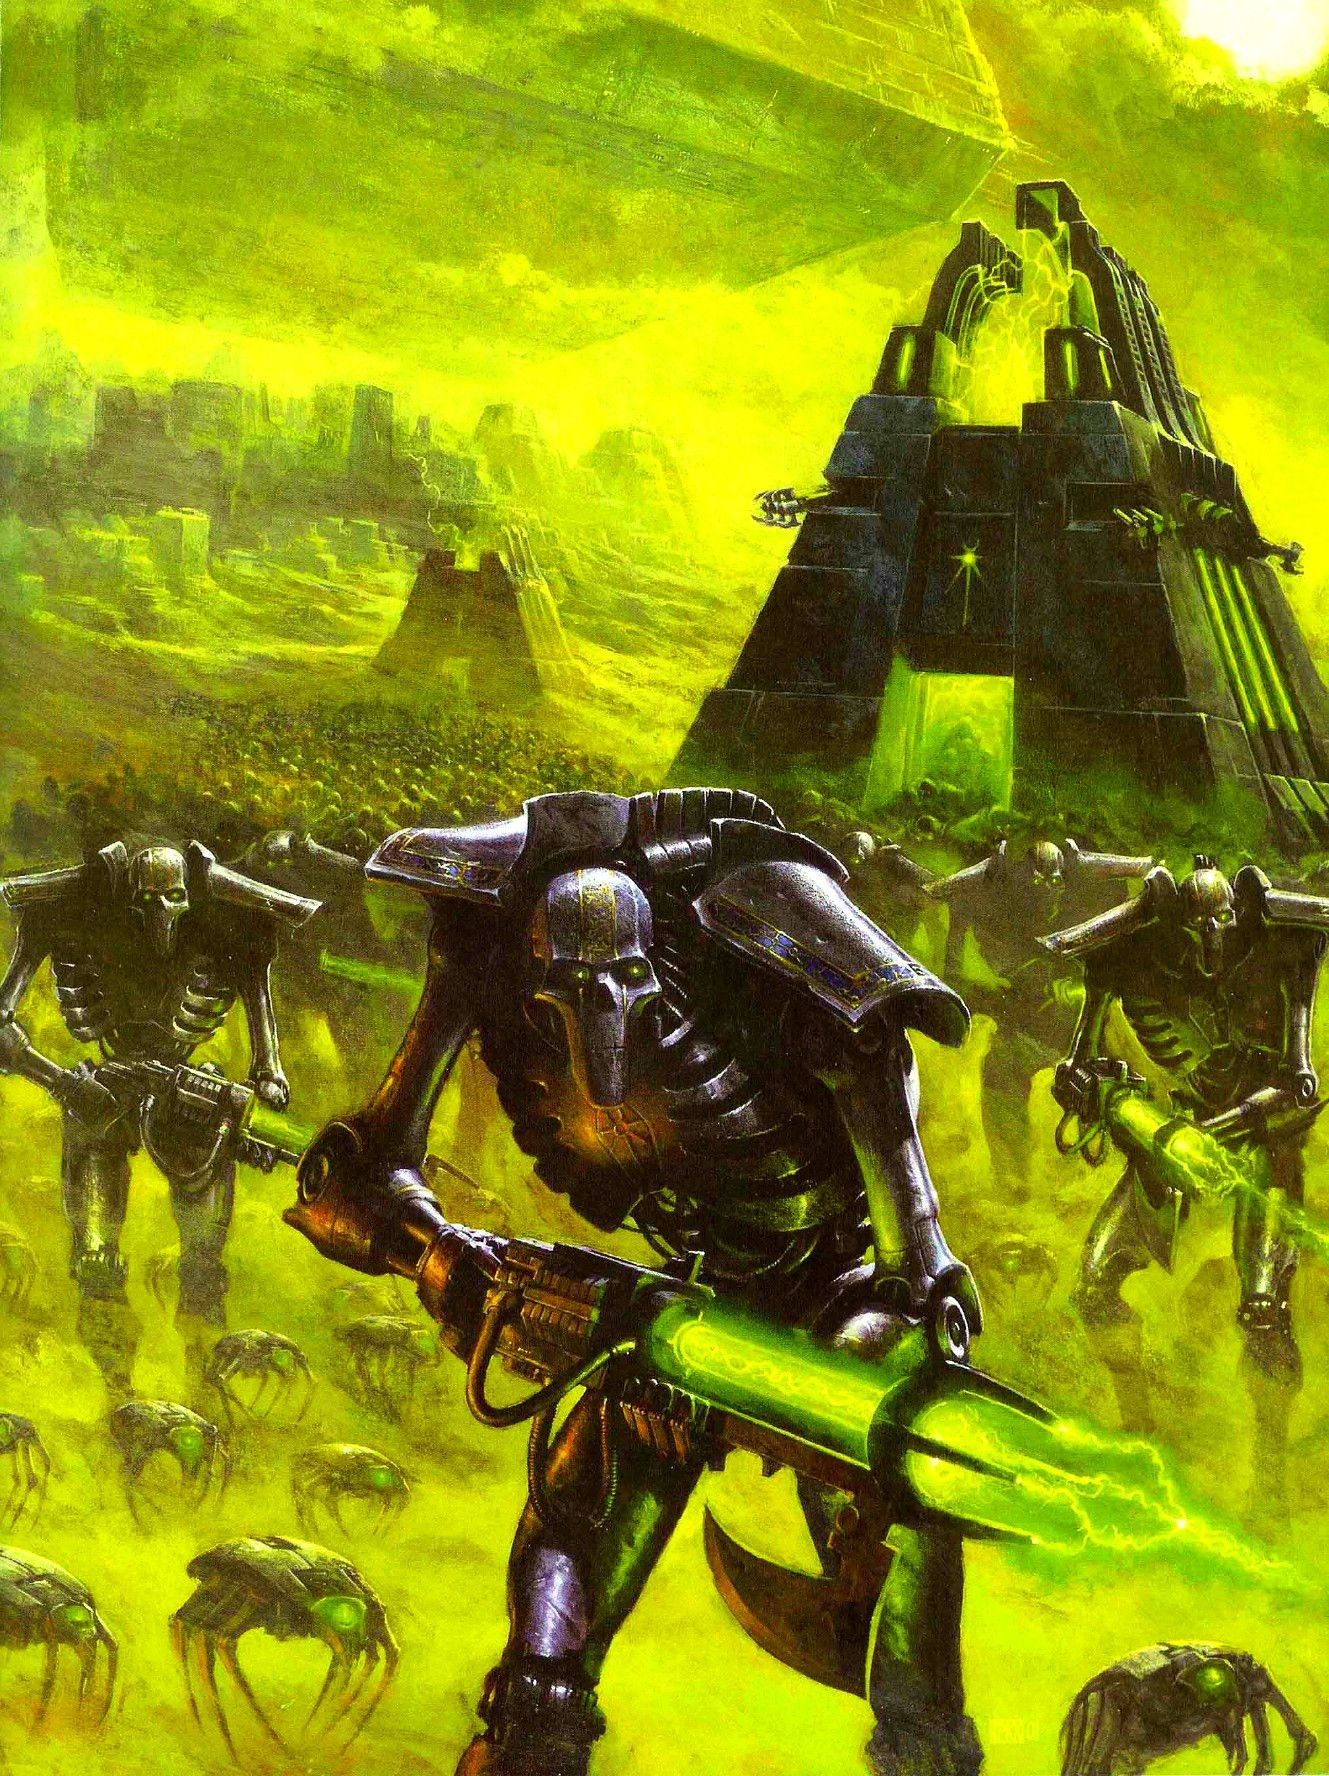 Warhammer 40k D&D 5e – Hack #1 – Blog of Characters & Campaign Settings